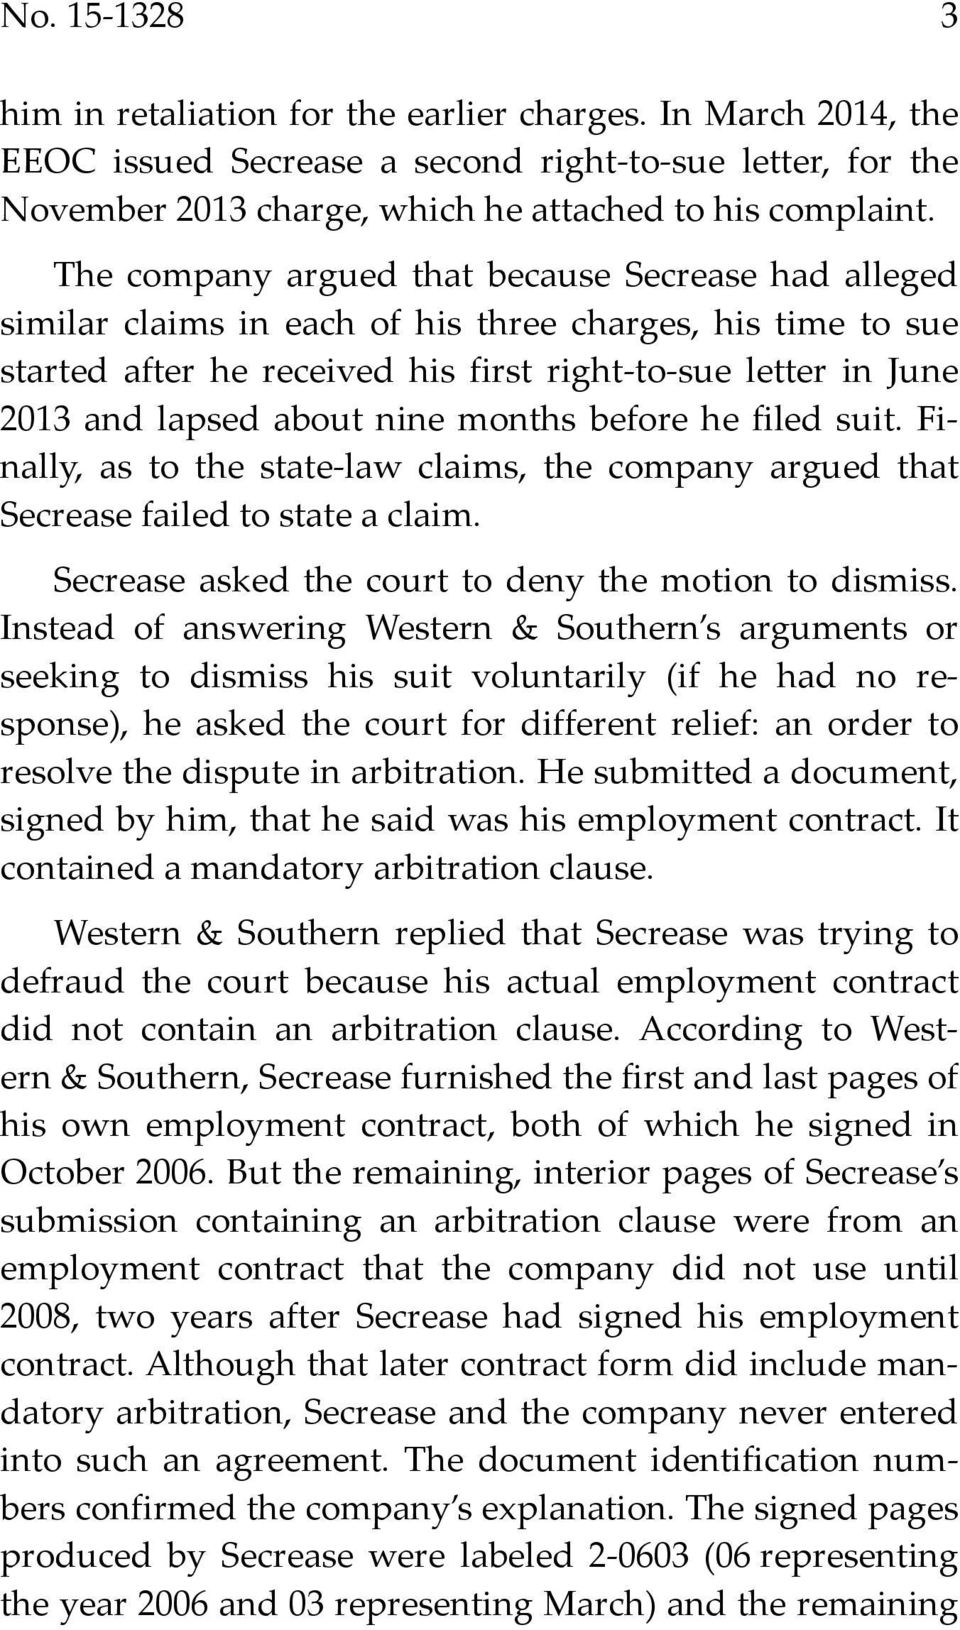 nine months before he filed suit. Finally, as to the state-law claims, the company argued that Secrease failed to state a claim. Secrease asked the court to deny the motion to dismiss.